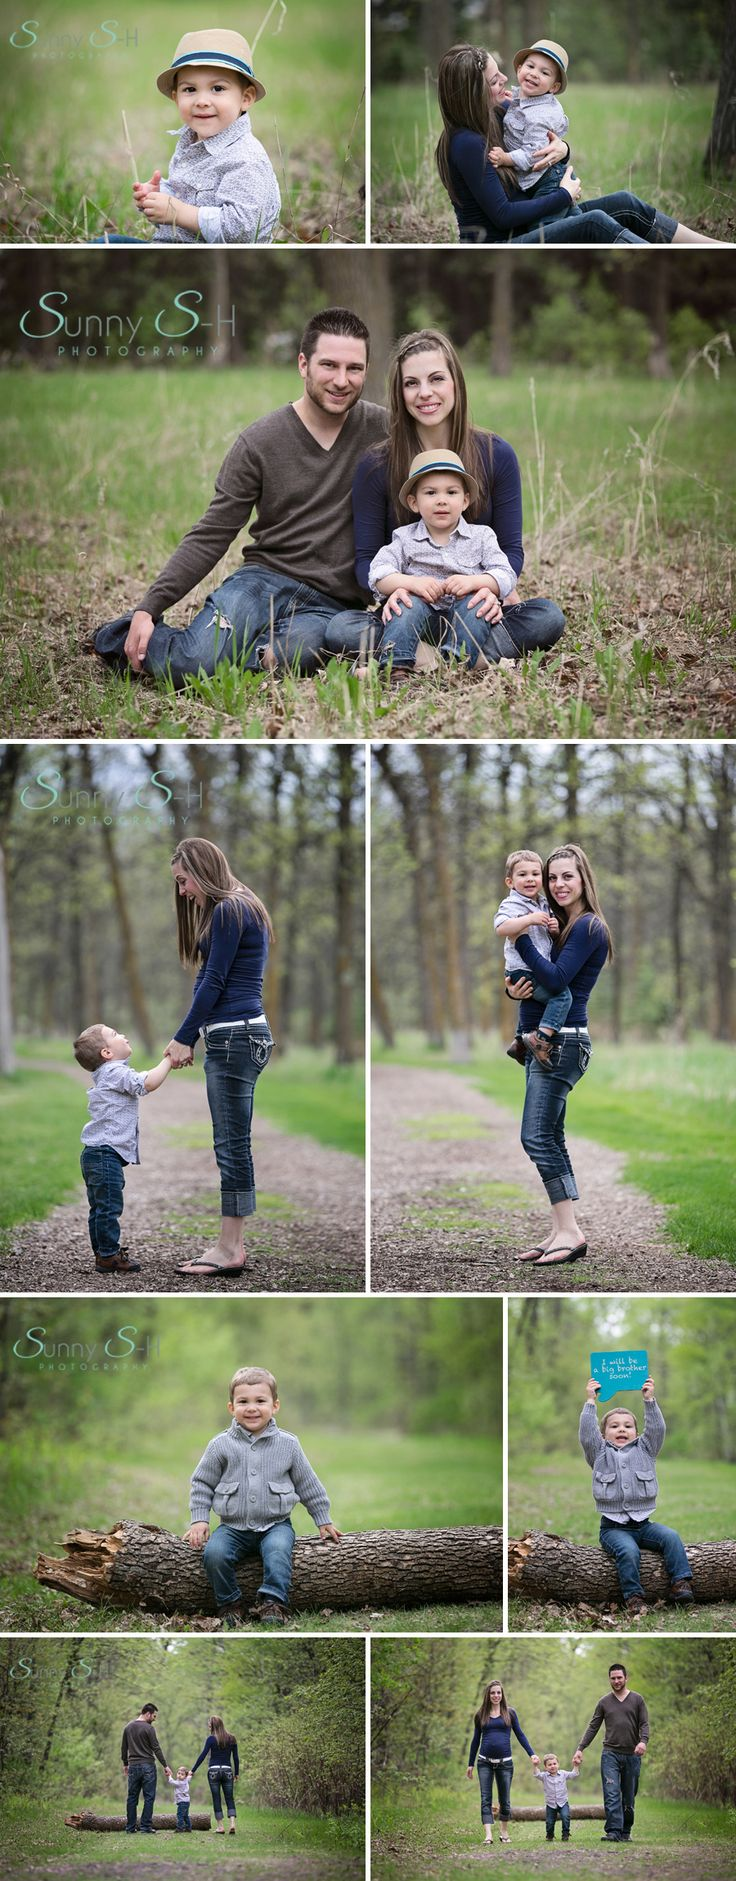 Cute outdoor family shoot.  Winnipeg Family Photographer, Sunny S-H Photography